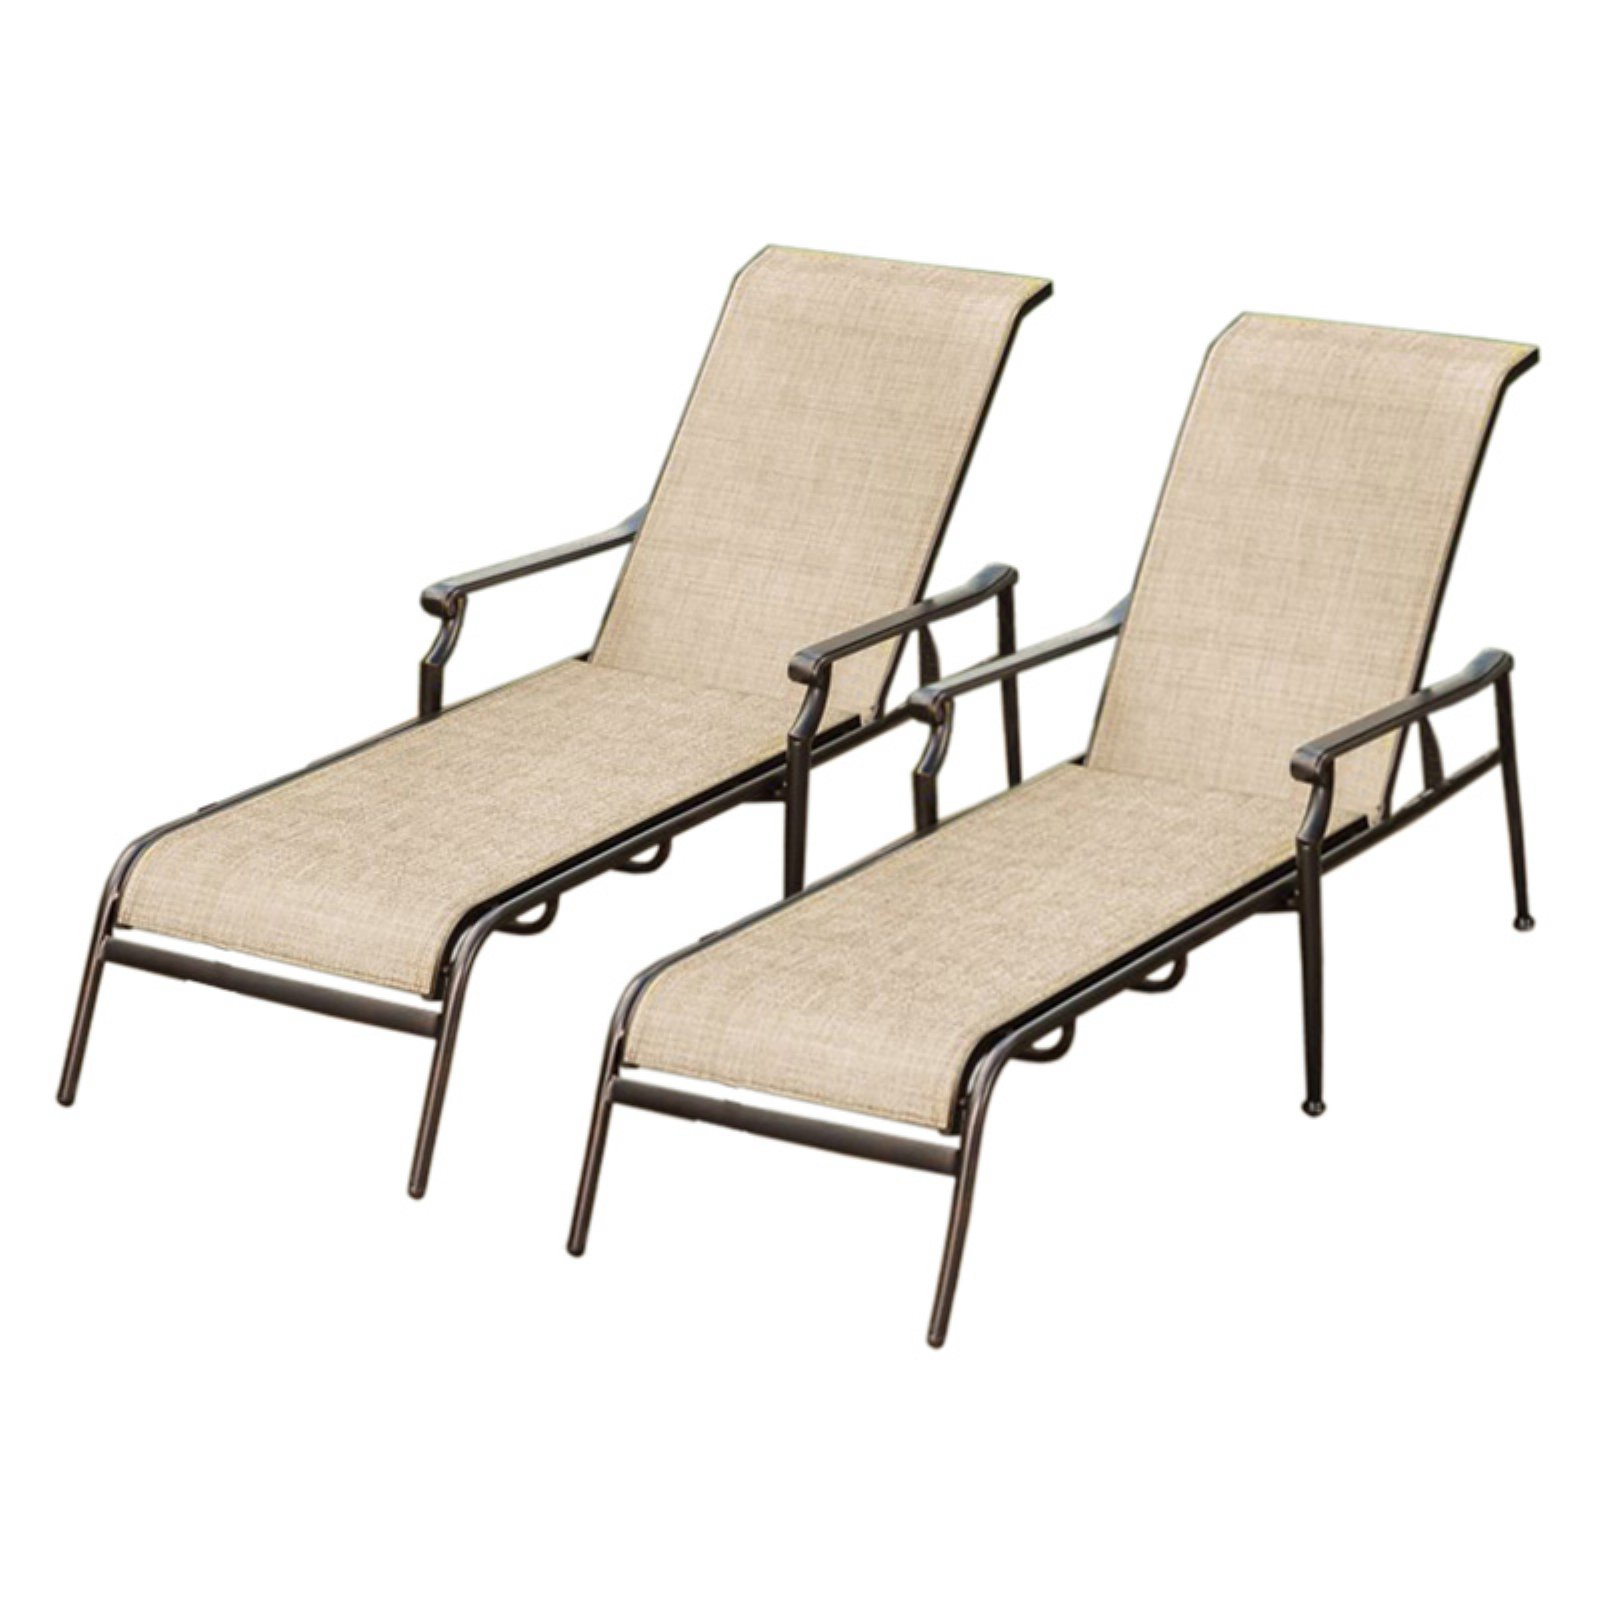 Oakland Living Bali Sling Aluminum Poolside Reclining Chaise Lounge - Set of 2